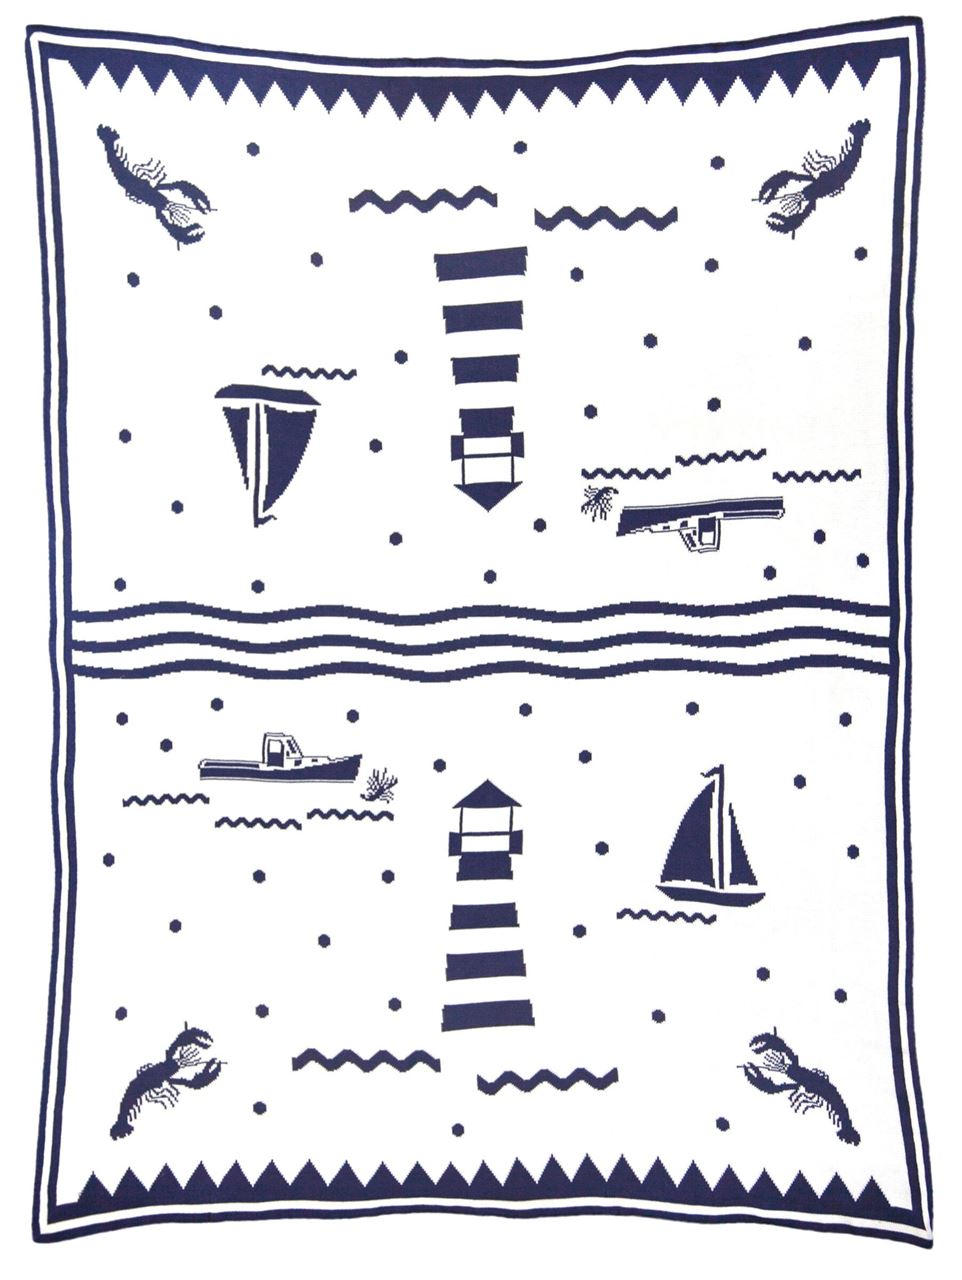 Lighthouse Reversible Blanket by Chandler 4 Corners